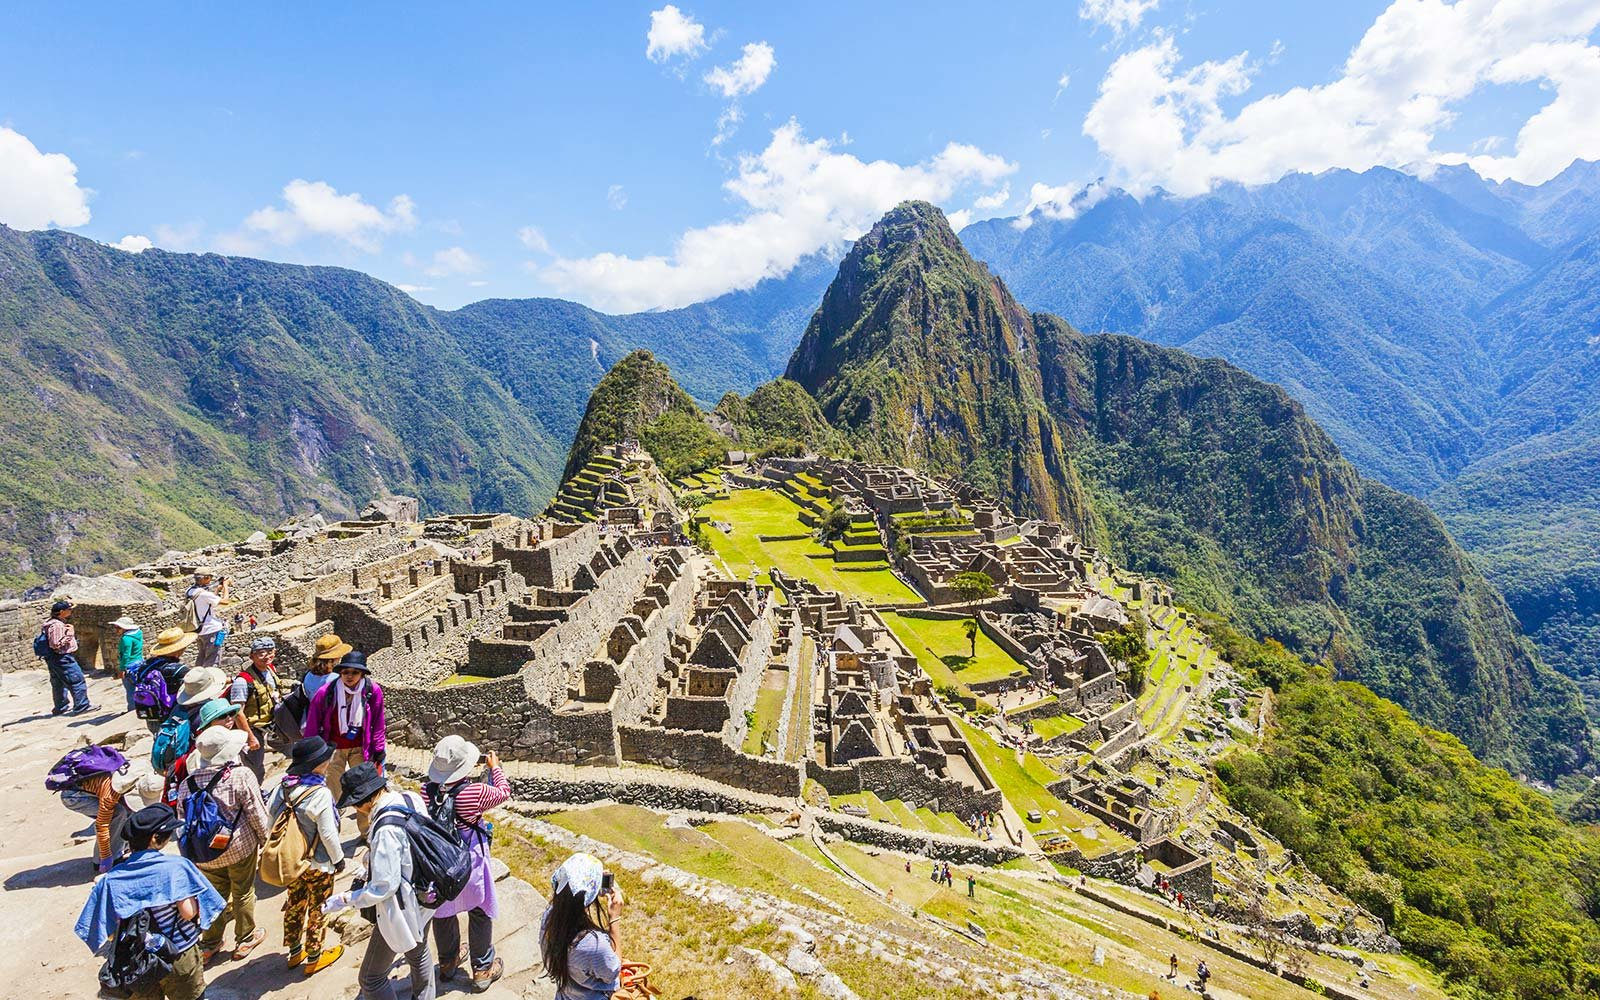 Peru, Cuzco, Machu Picchu, Tourists visit old ruins of machupicchu. (Photo by: JTB/UIG via Getty Images) (Photo by: JTB Photo/UIG via Getty Images)